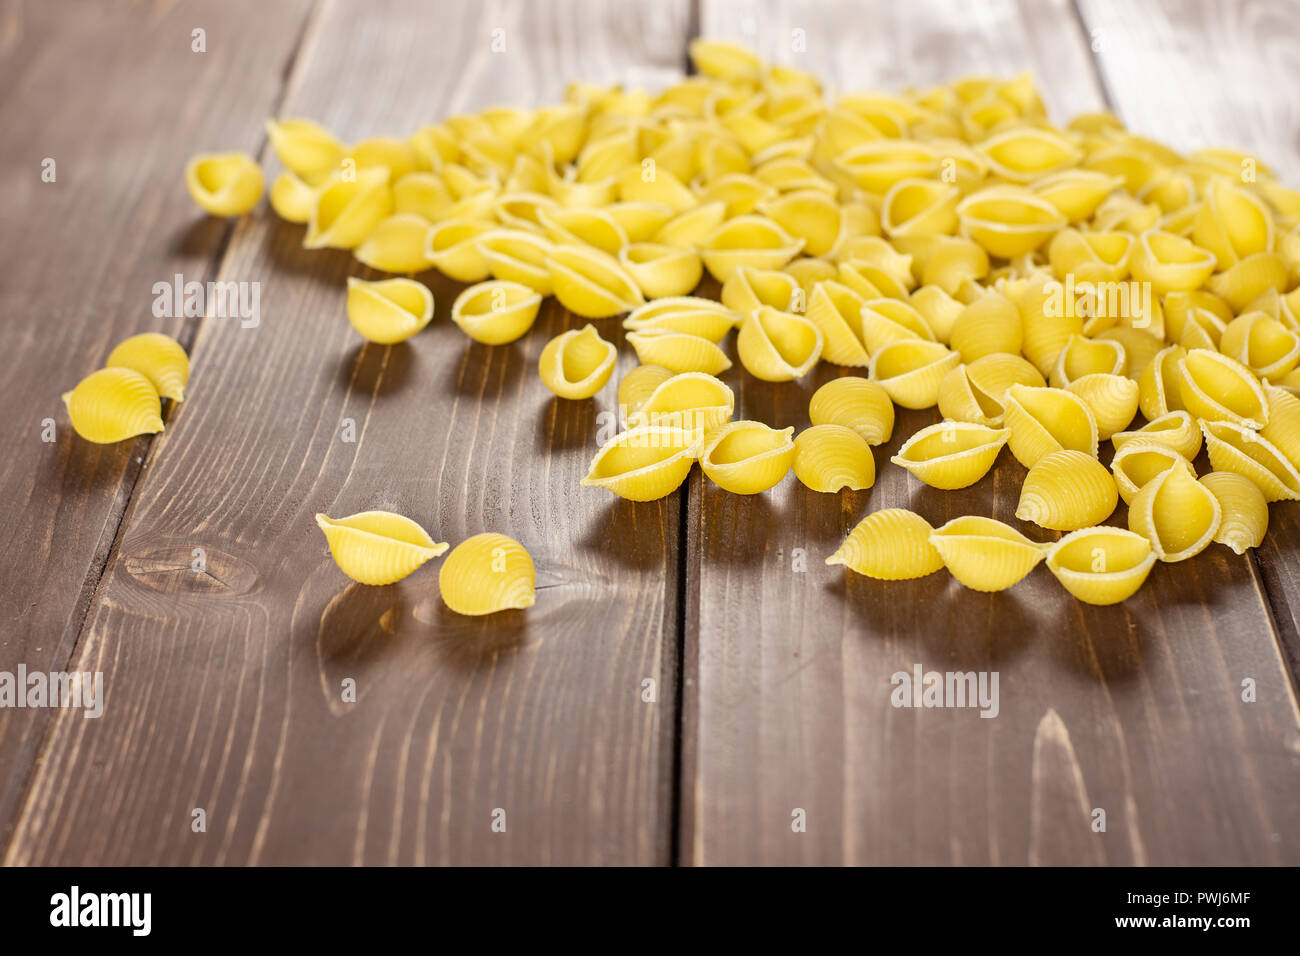 Lot of whole raw yellow pasta conchiglie variety on brown wood Stock Photo